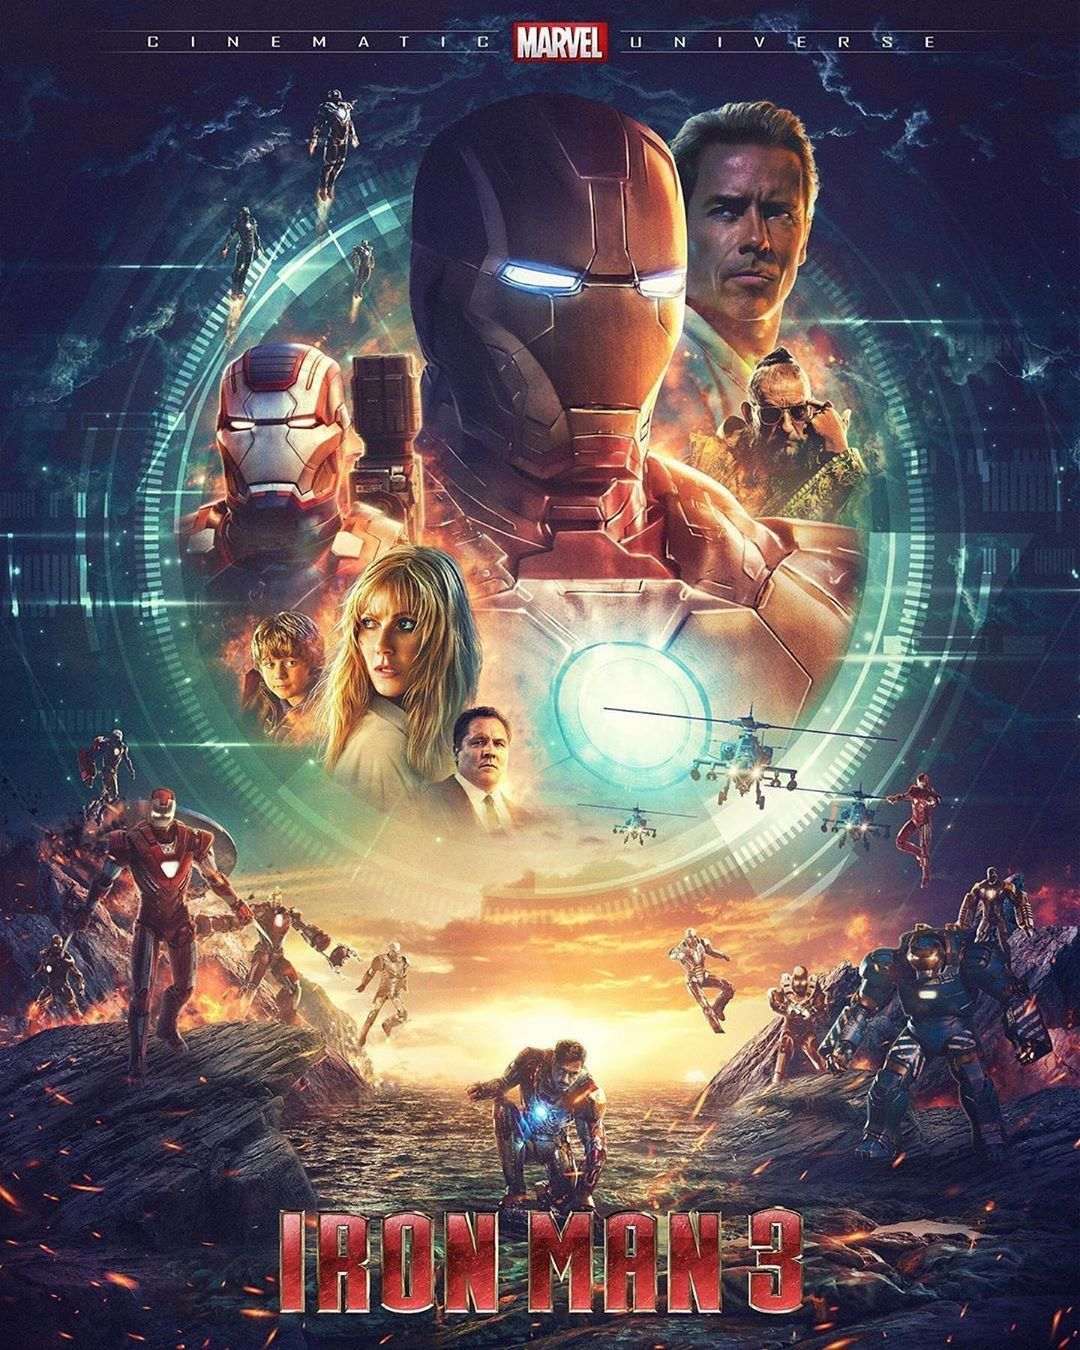 6 369 Likes 16 Comments Marvel Official New Avengers On Instagram Iron Man 3 Art Cred Marvel Iron Man Iron Man Poster Iron Man 3 Poster